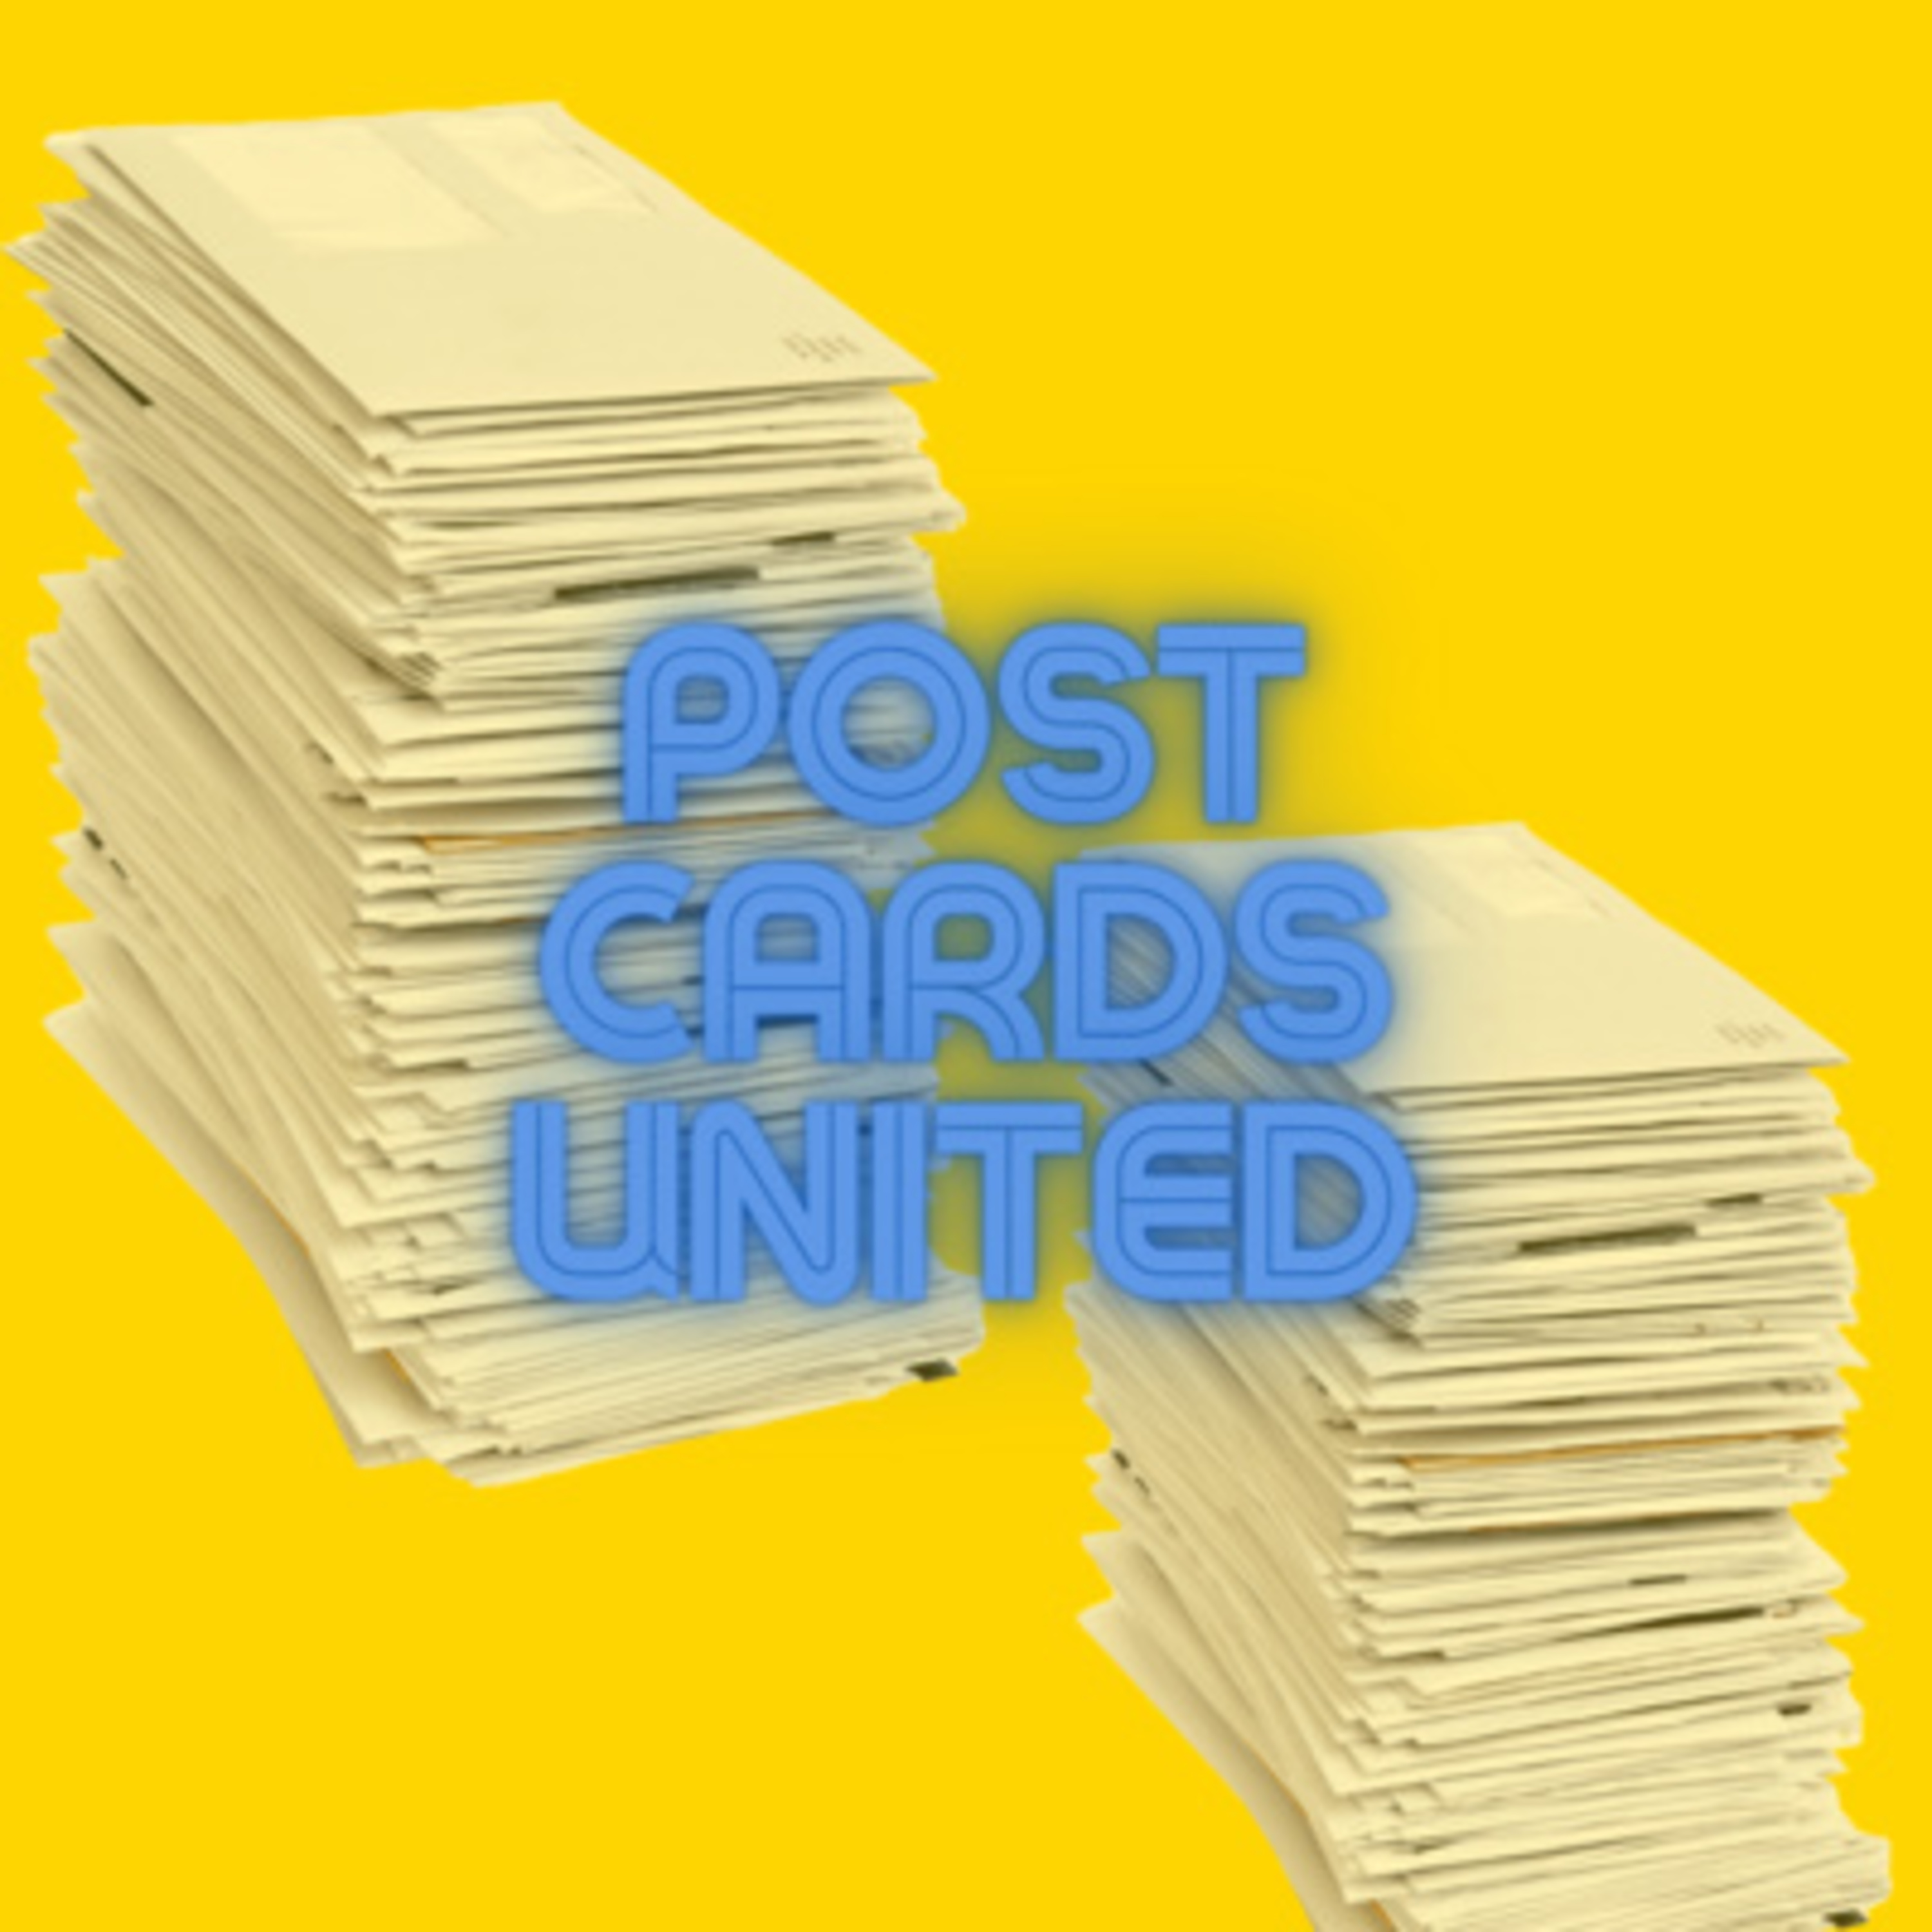 Post Cards United for Episode 53.